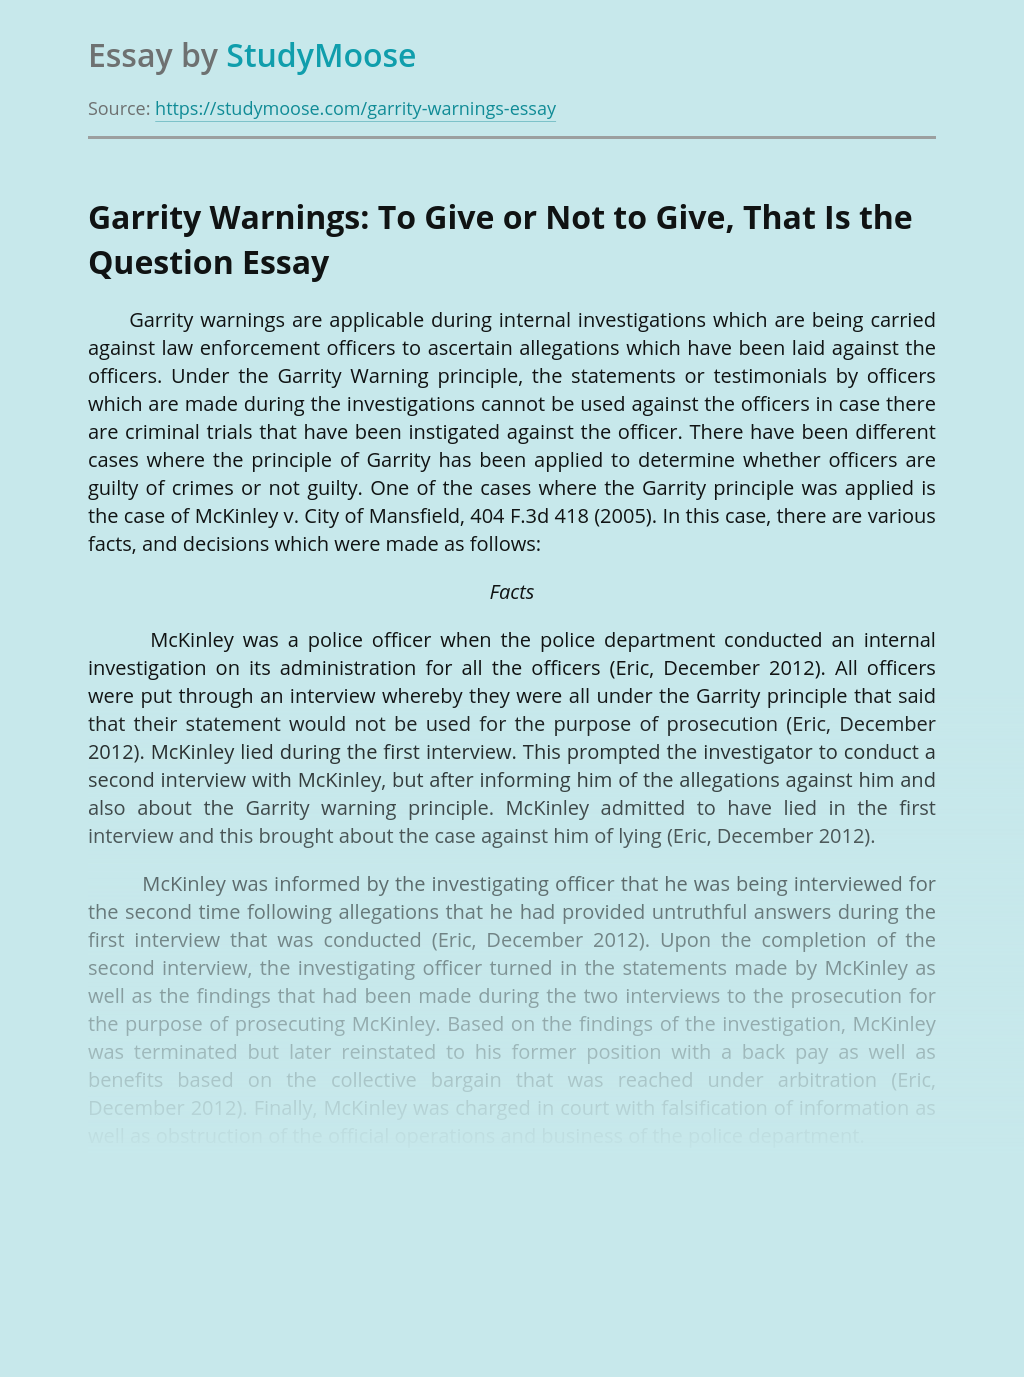 Garrity Warnings: To Give or Not to Give, That Is the Question